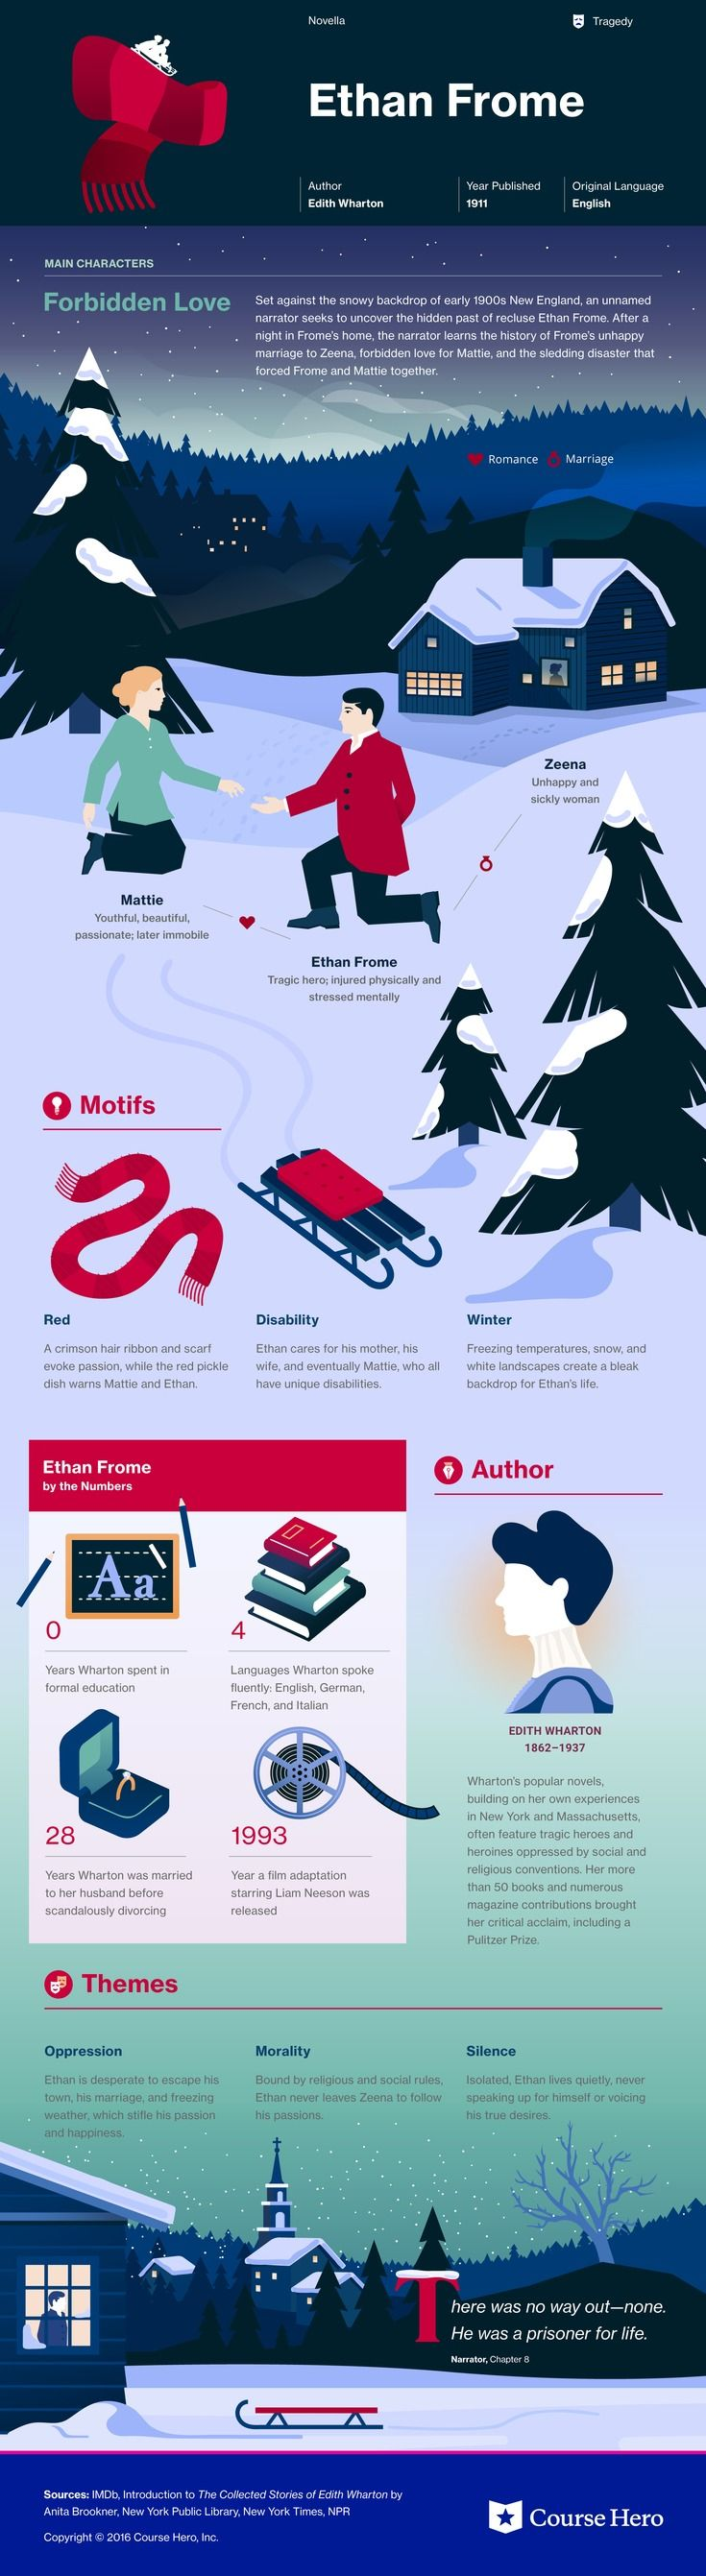 this coursehero infographic on ethan frome is both visually this coursehero infographic on ethan frome is both visually stunning and informative